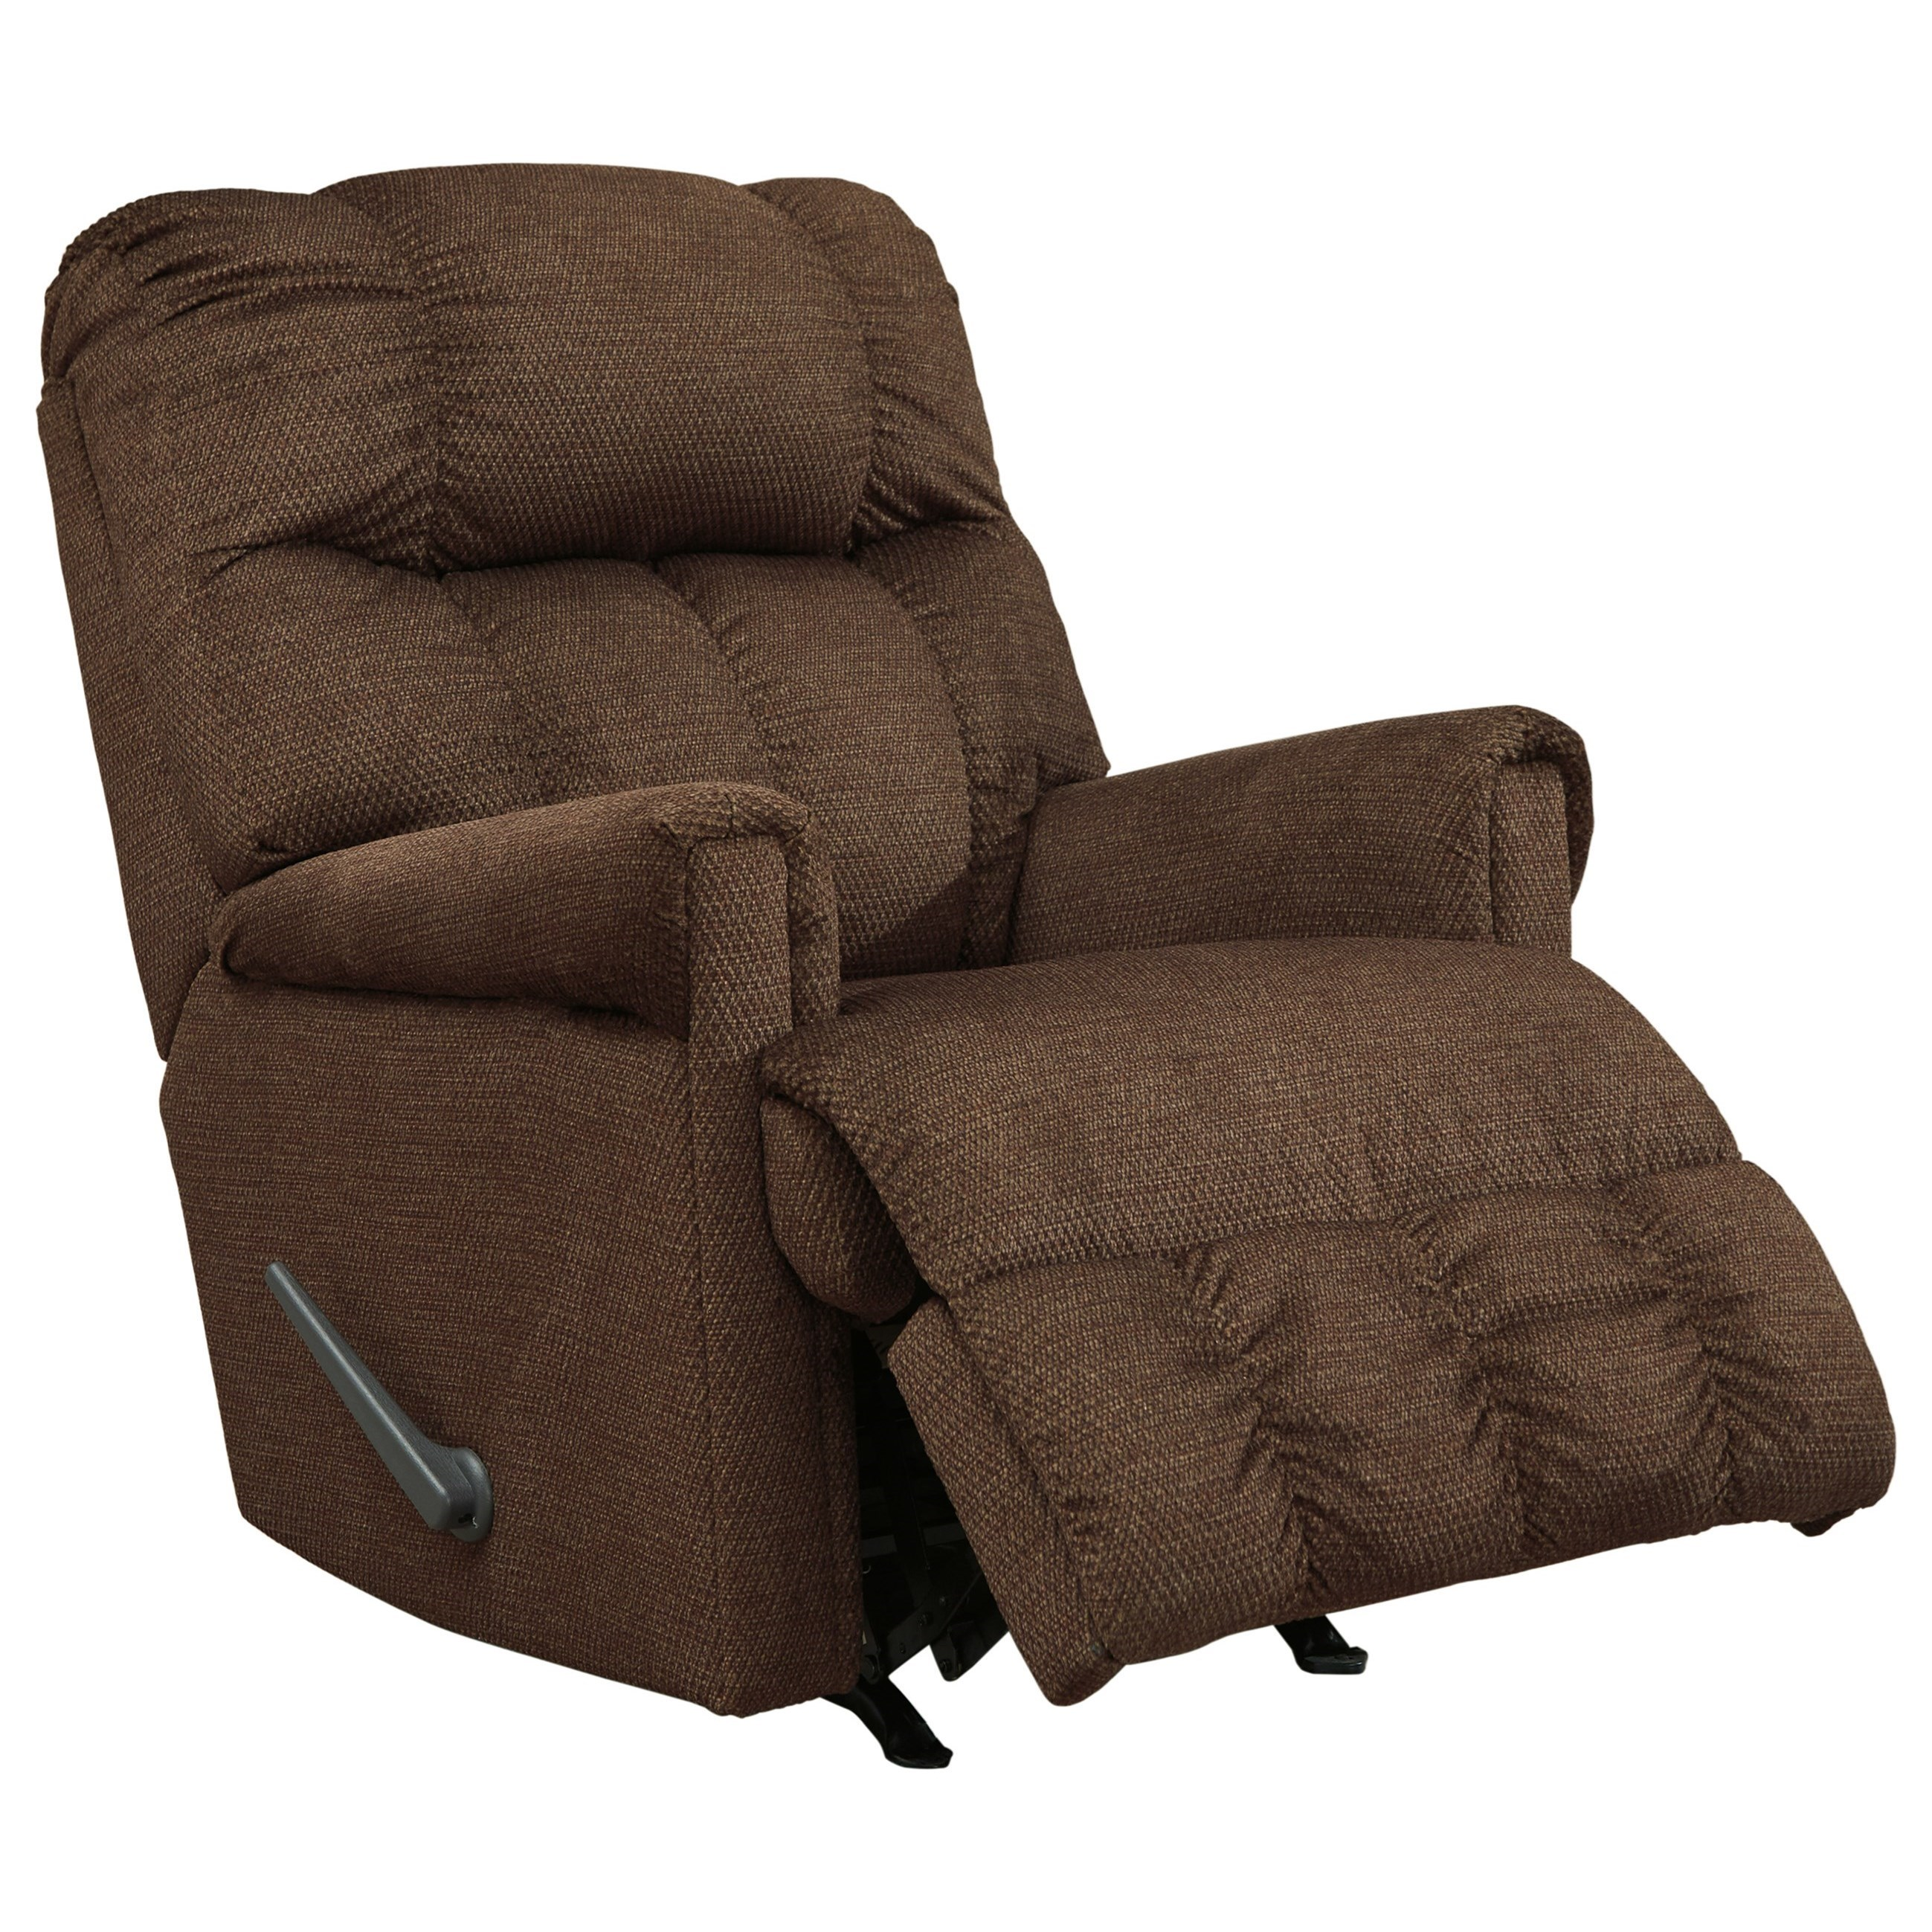 Signature Design by Ashley Craggly Casual Rocker Recliner